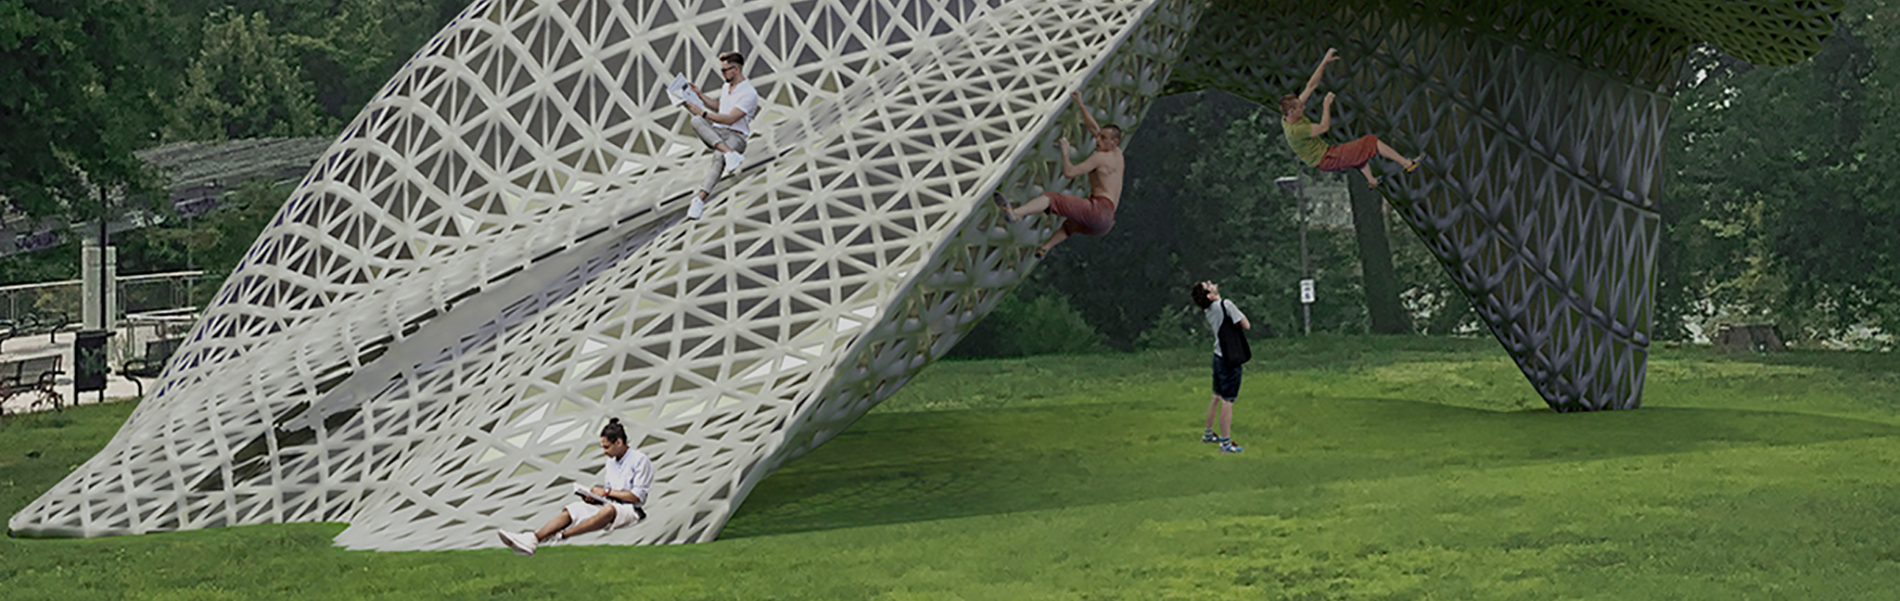 People climbing a gray latticelike structure with a green lawn below.